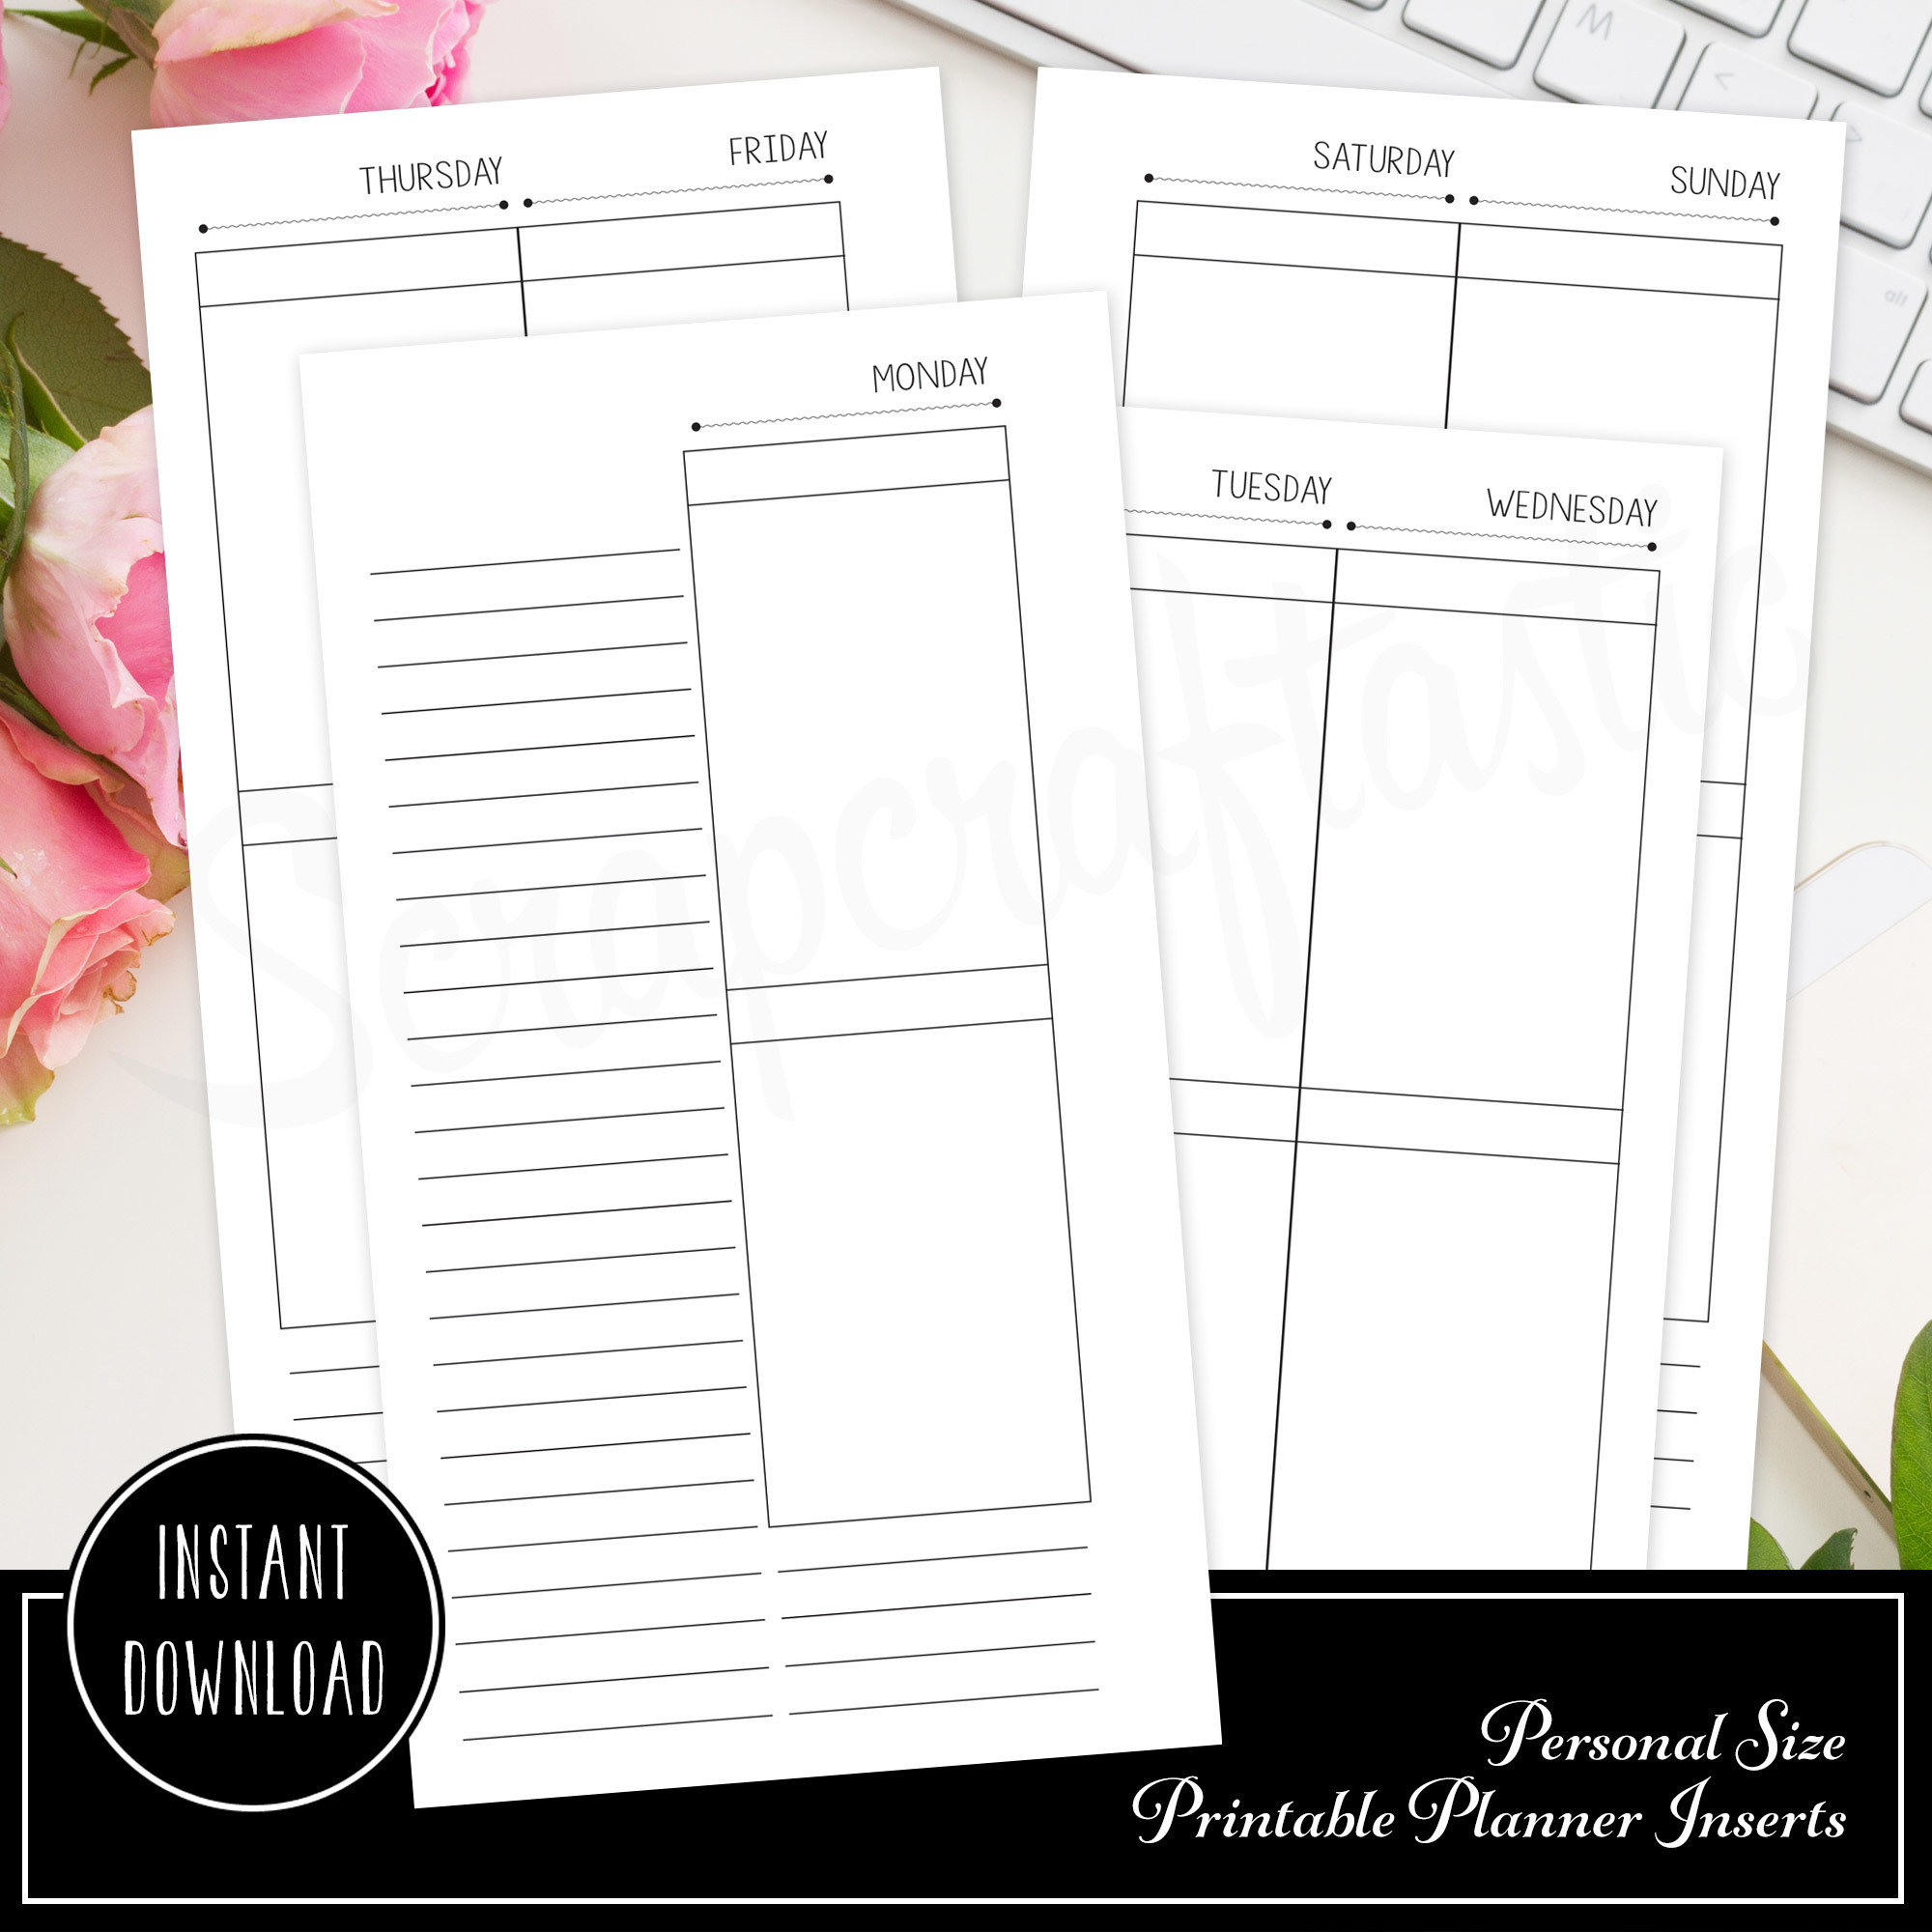 Deluxe Planner Printable Insert Refill Undated WO4P Personal Size Filofax, Kikki K, ColorCrush with MAMBI Happy Planner Size Full Boxes 00230